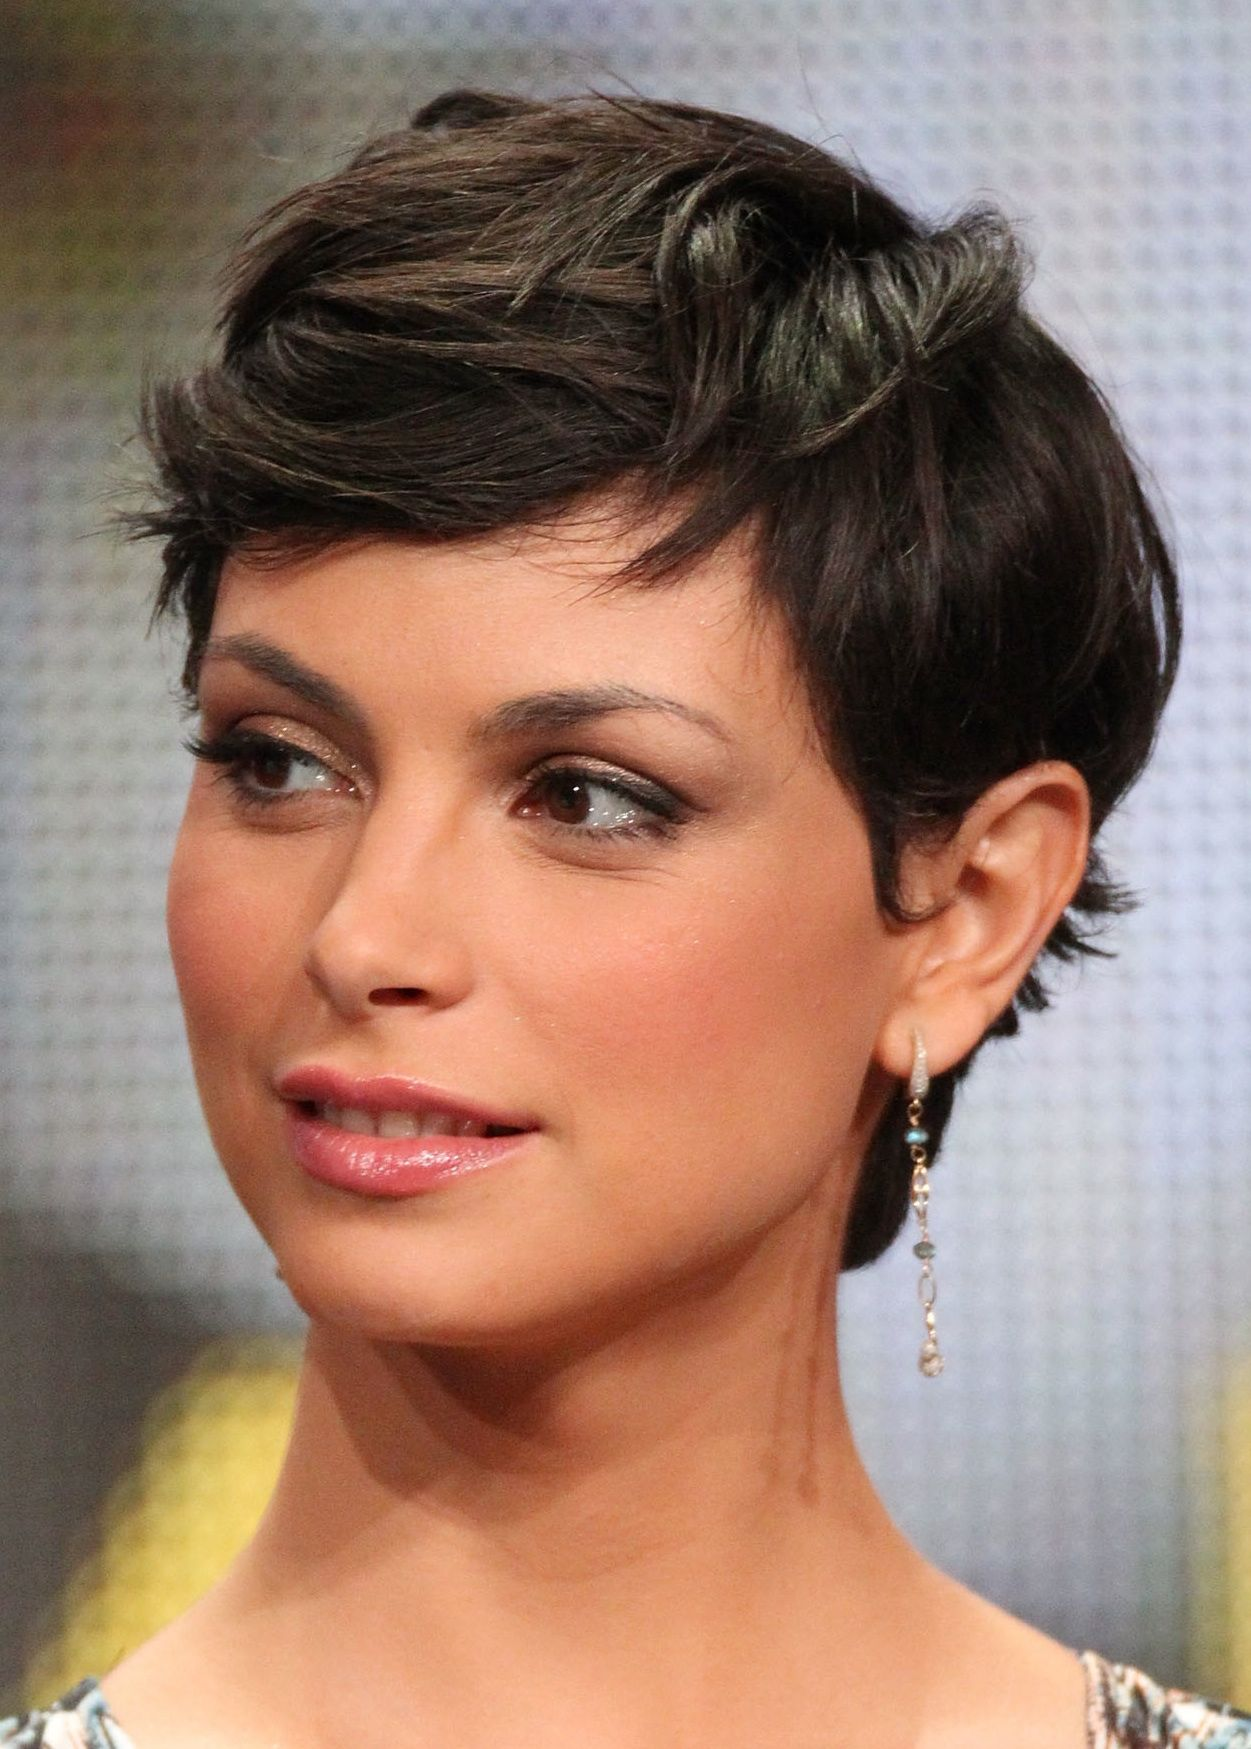 What Are Some Classic Short Cuts For Brown Hair Hair Styles